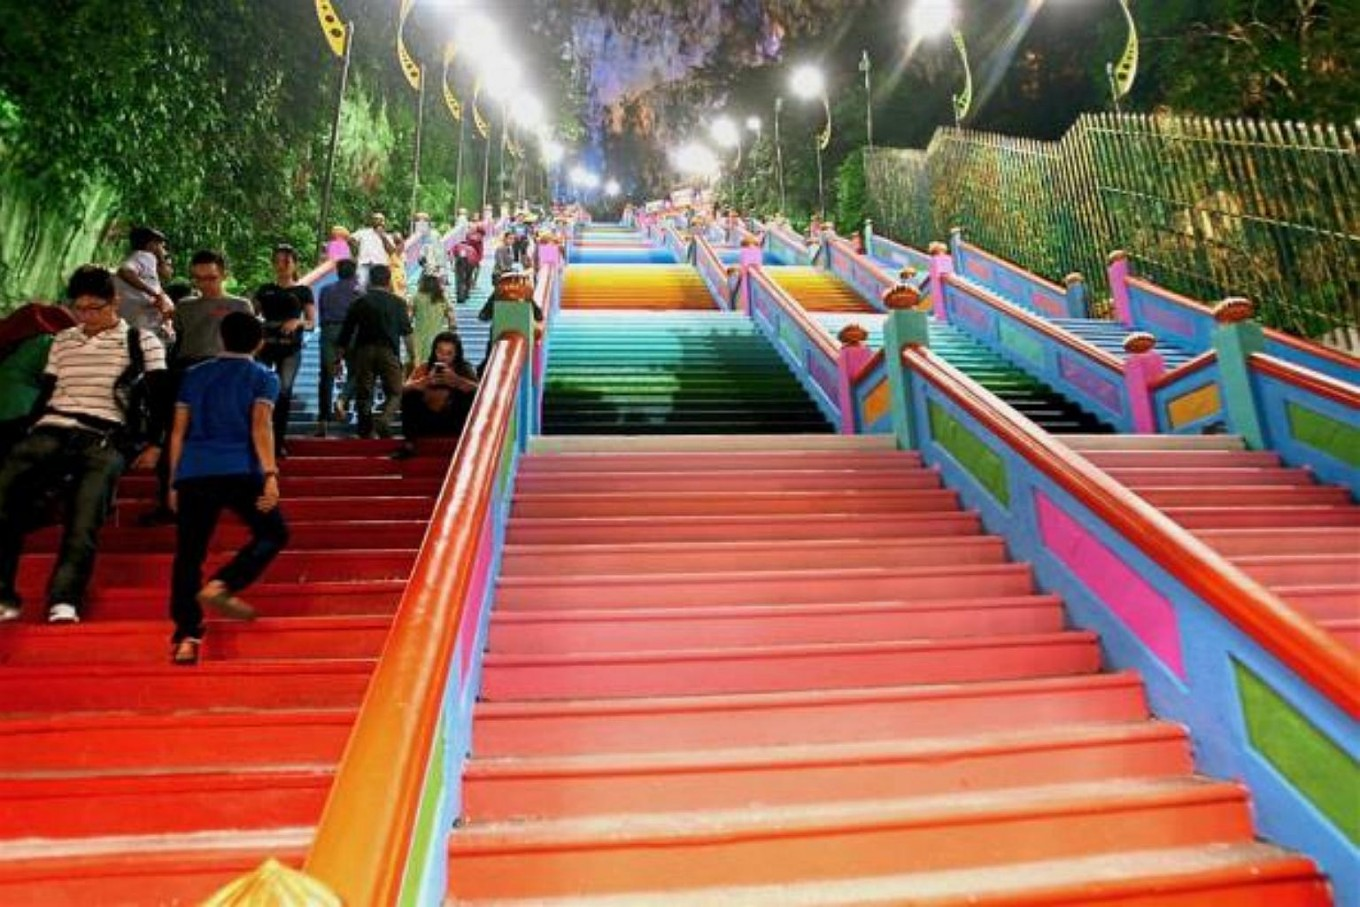 Colorful paint job on Malaysia's Batu Caves staircase may be illegal